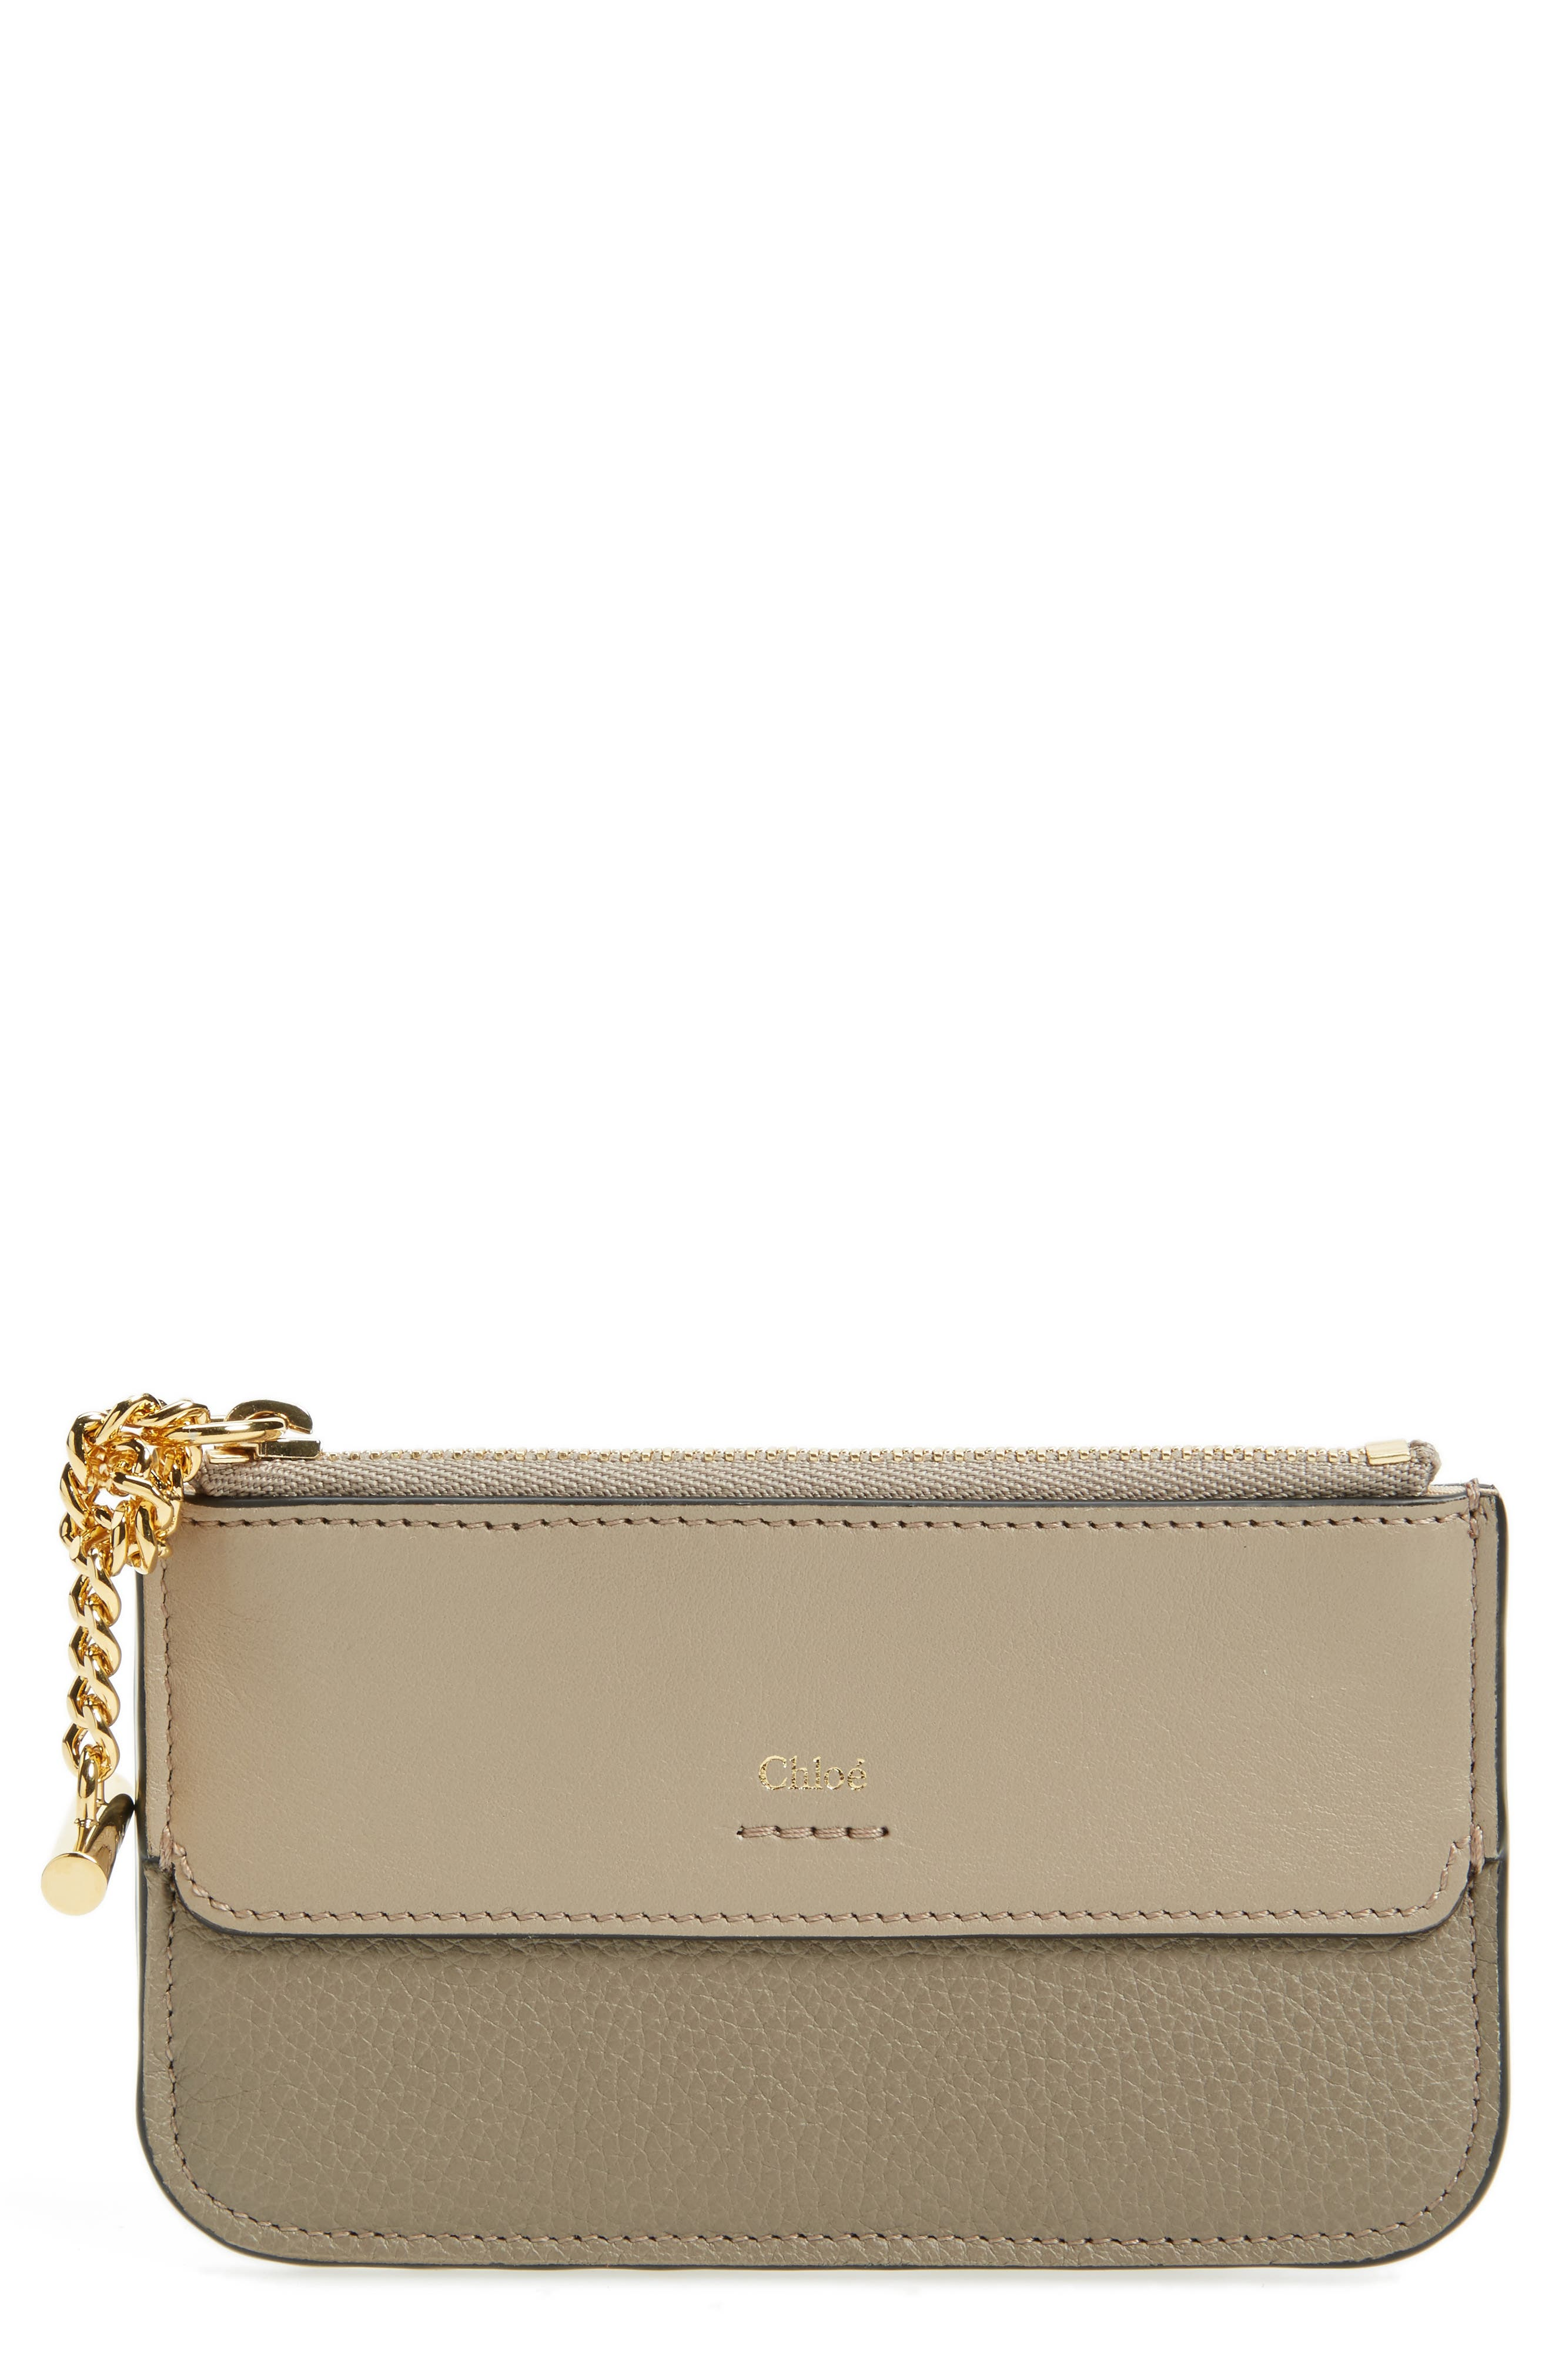 Alternate Image 1 Selected - Chloé Joe Calfskin Leather Coin Pouch